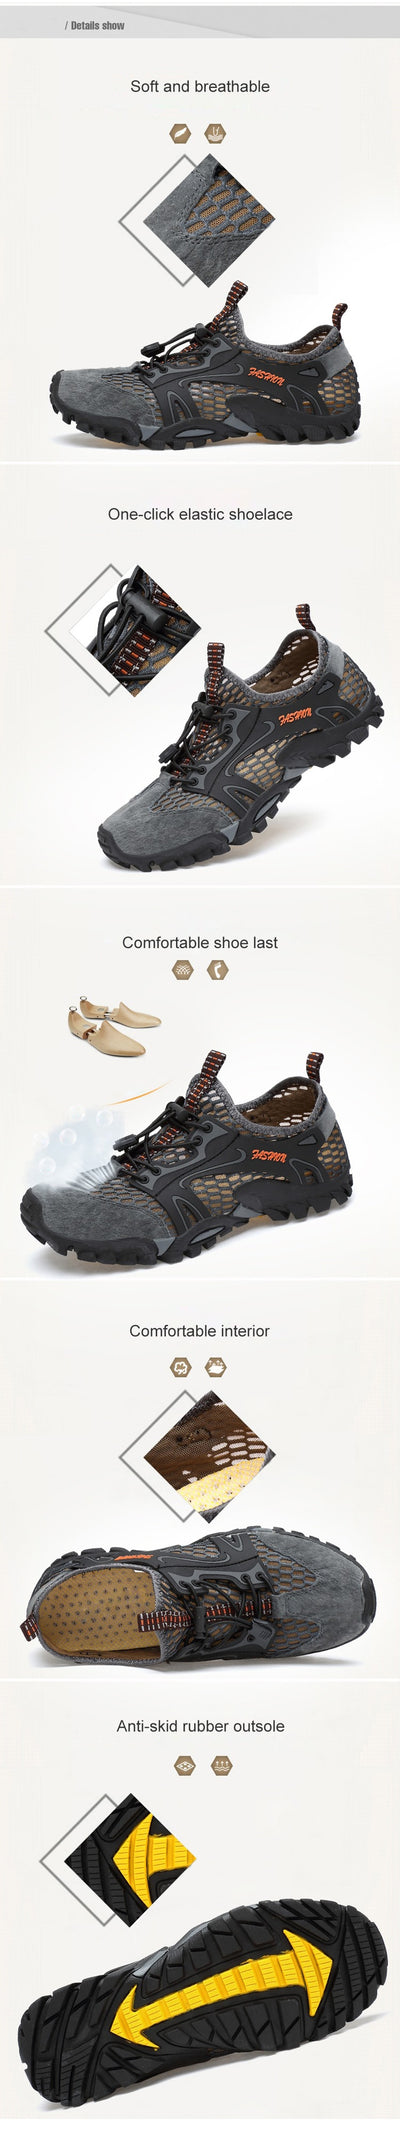 ZYYZYM Men Mesh Casual Shoes Spring Summer Breathable Light Outdoor Wading Walking Men Shoes Fashion Sneakers Footwear